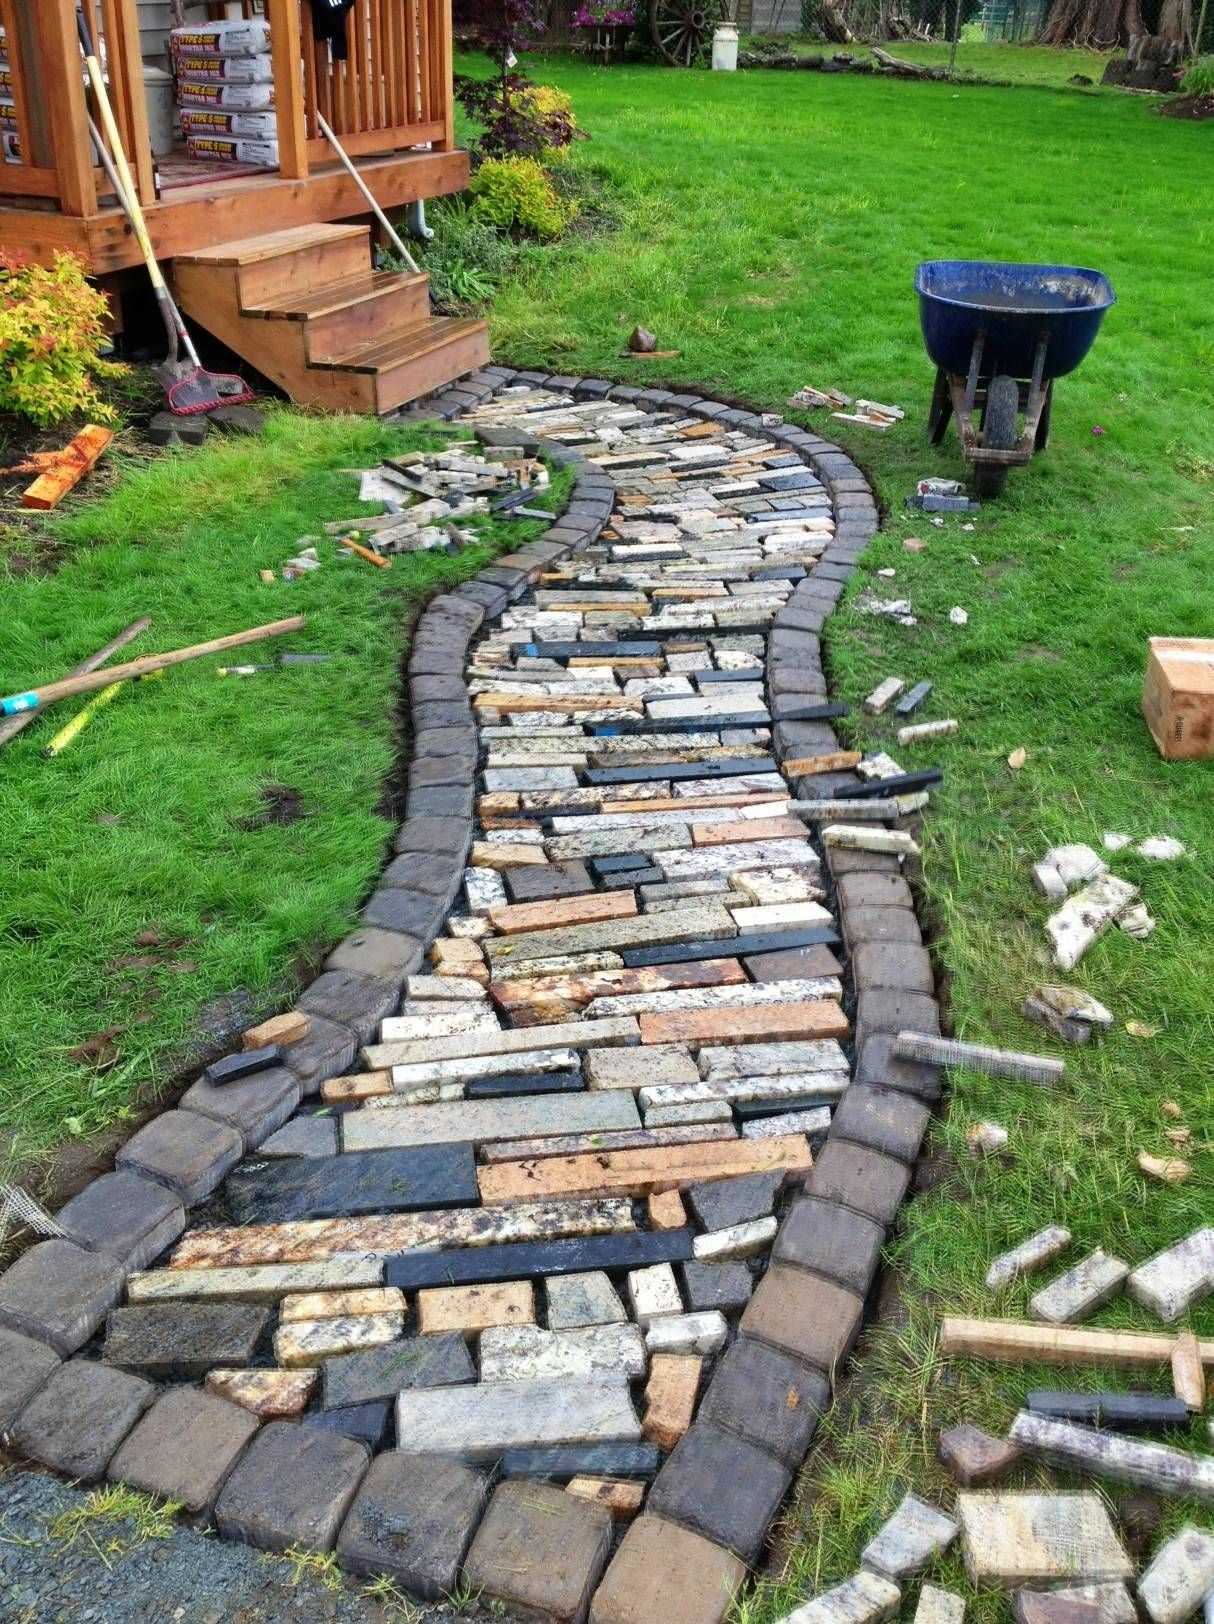 granite walkway garden yard pinterest selber machen g rten und gartenweg. Black Bedroom Furniture Sets. Home Design Ideas